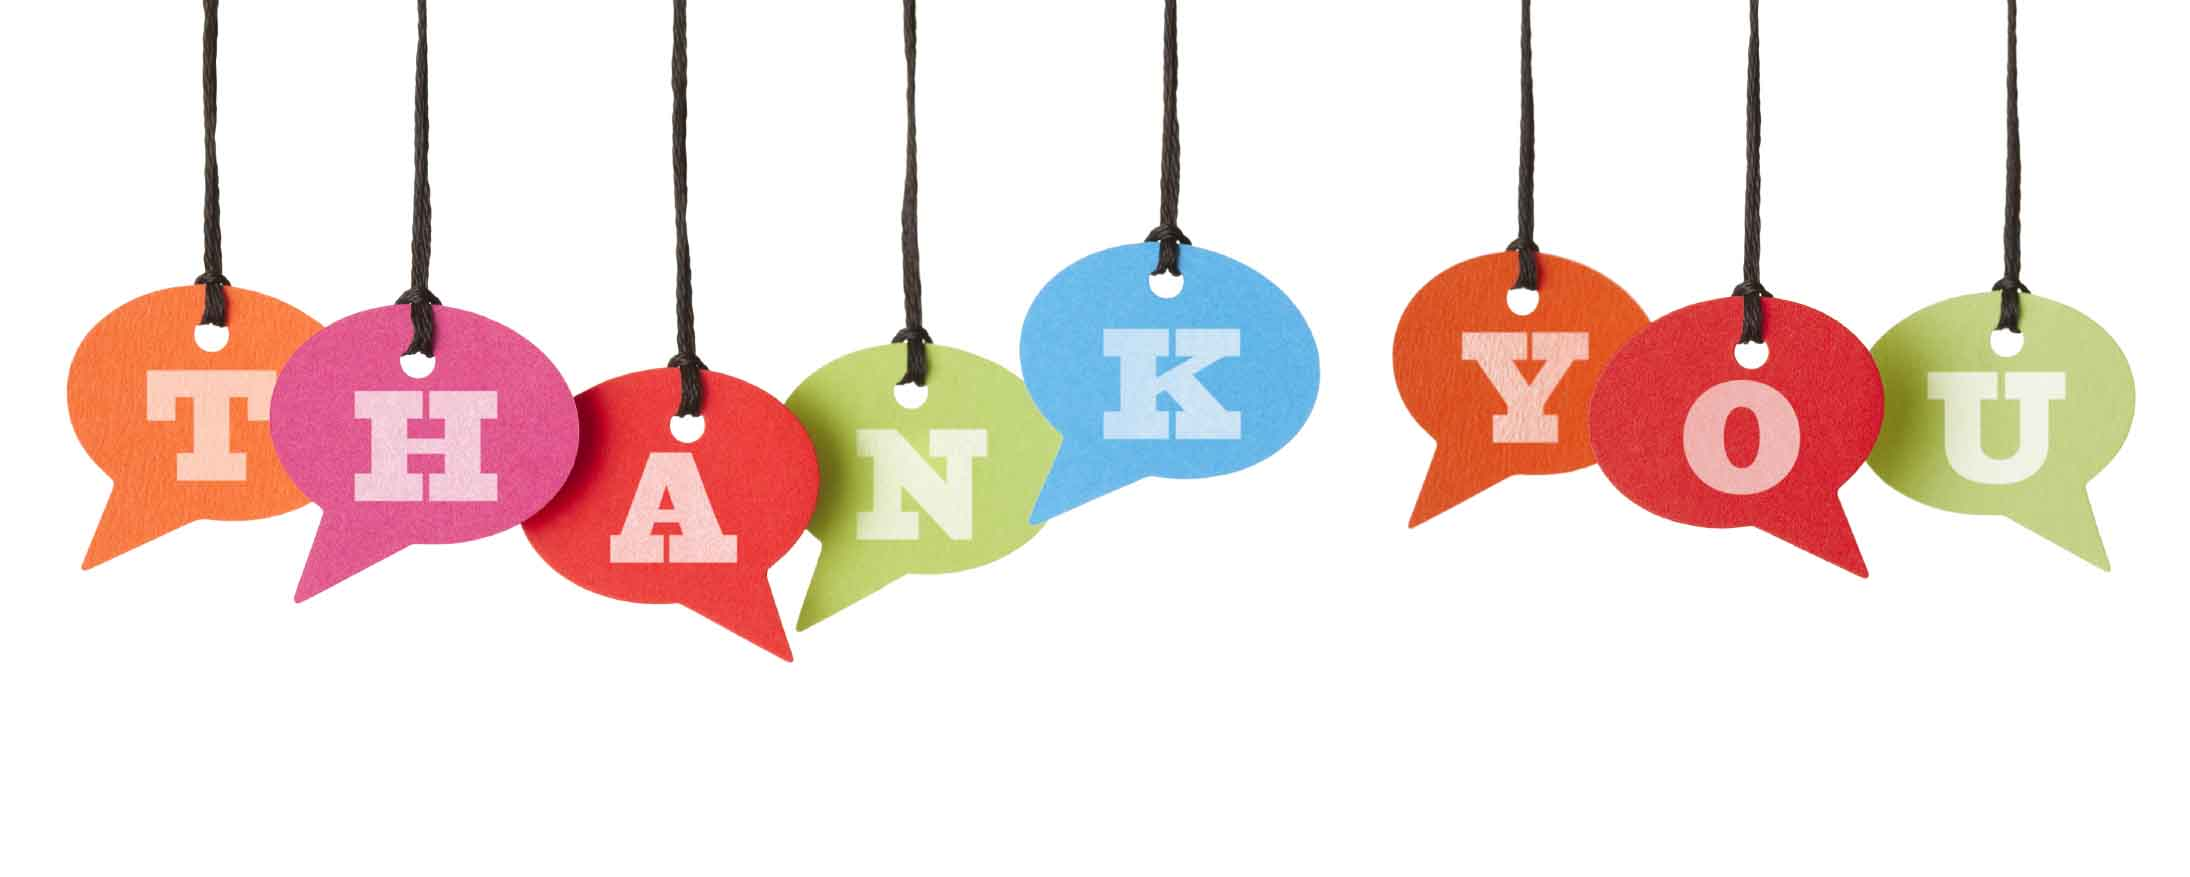 It's Time to Say Thank You - I Send Your Email | Email ...